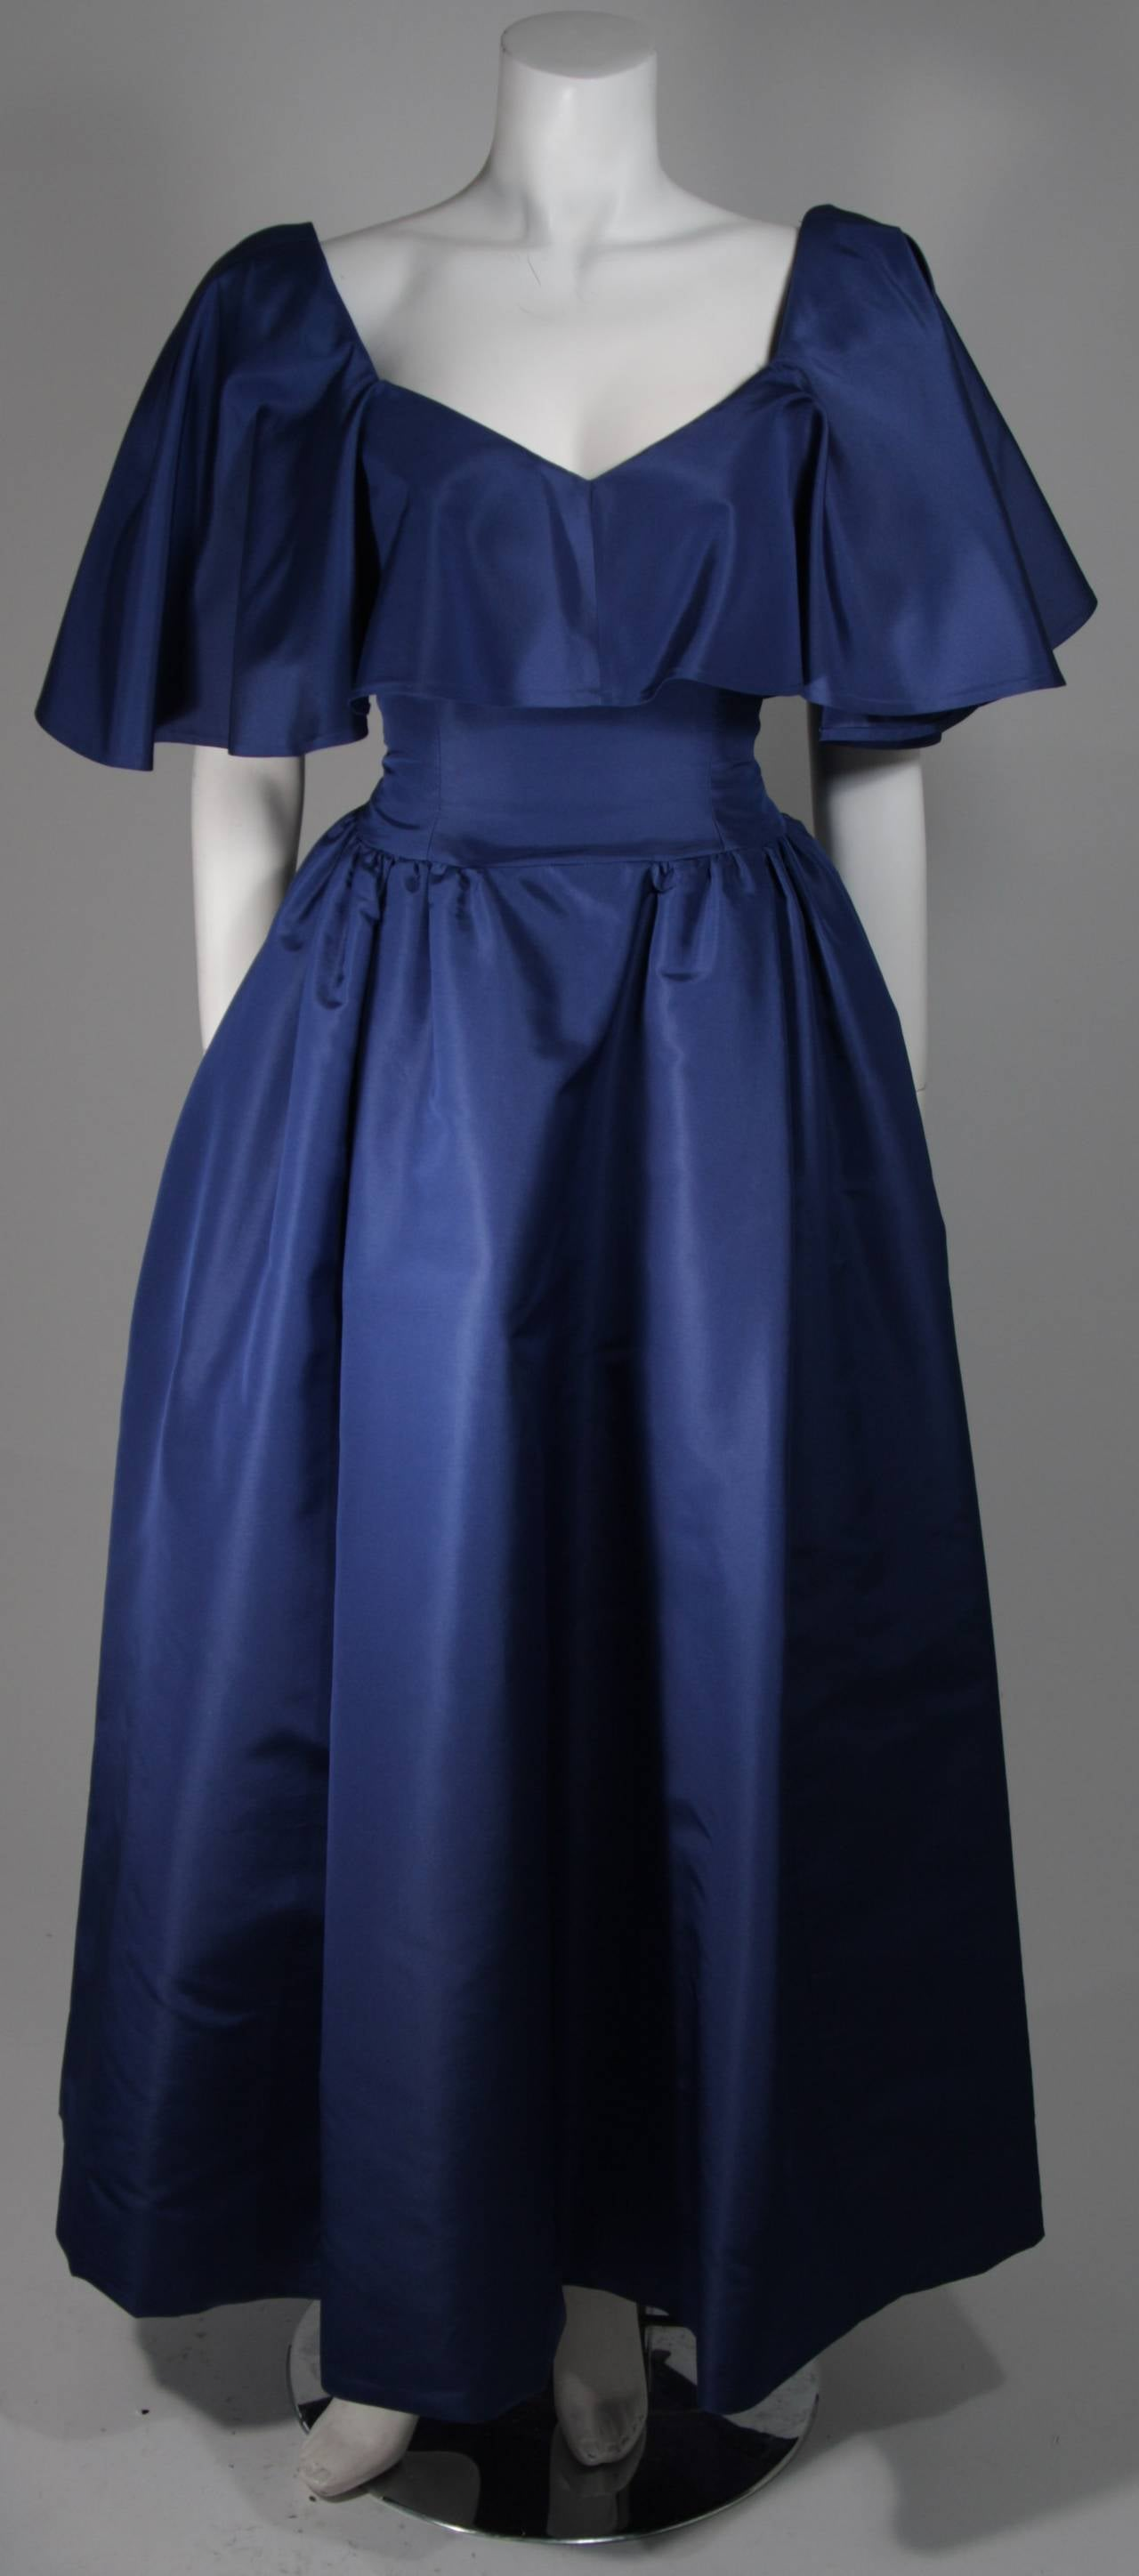 Circa 1980s Pauline Trigere Midnight Blue Faille Ball Gown with Cape Collar 6 2